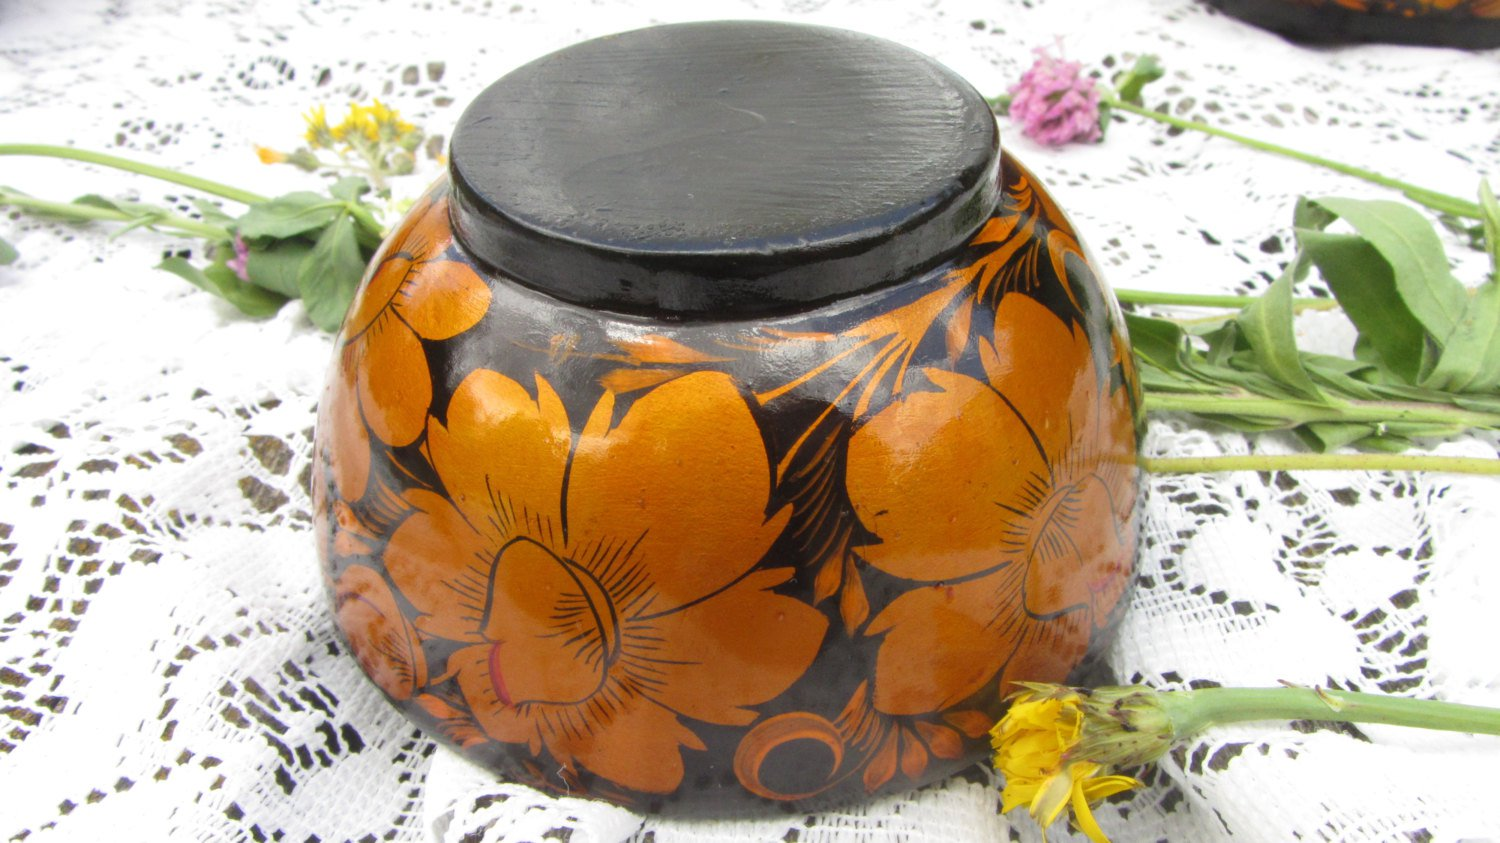 Hand Painted Russian Vintage Wooden Bowl, Traditional Russian Khokhloma Bowl, Floral Wooden Bowl, La